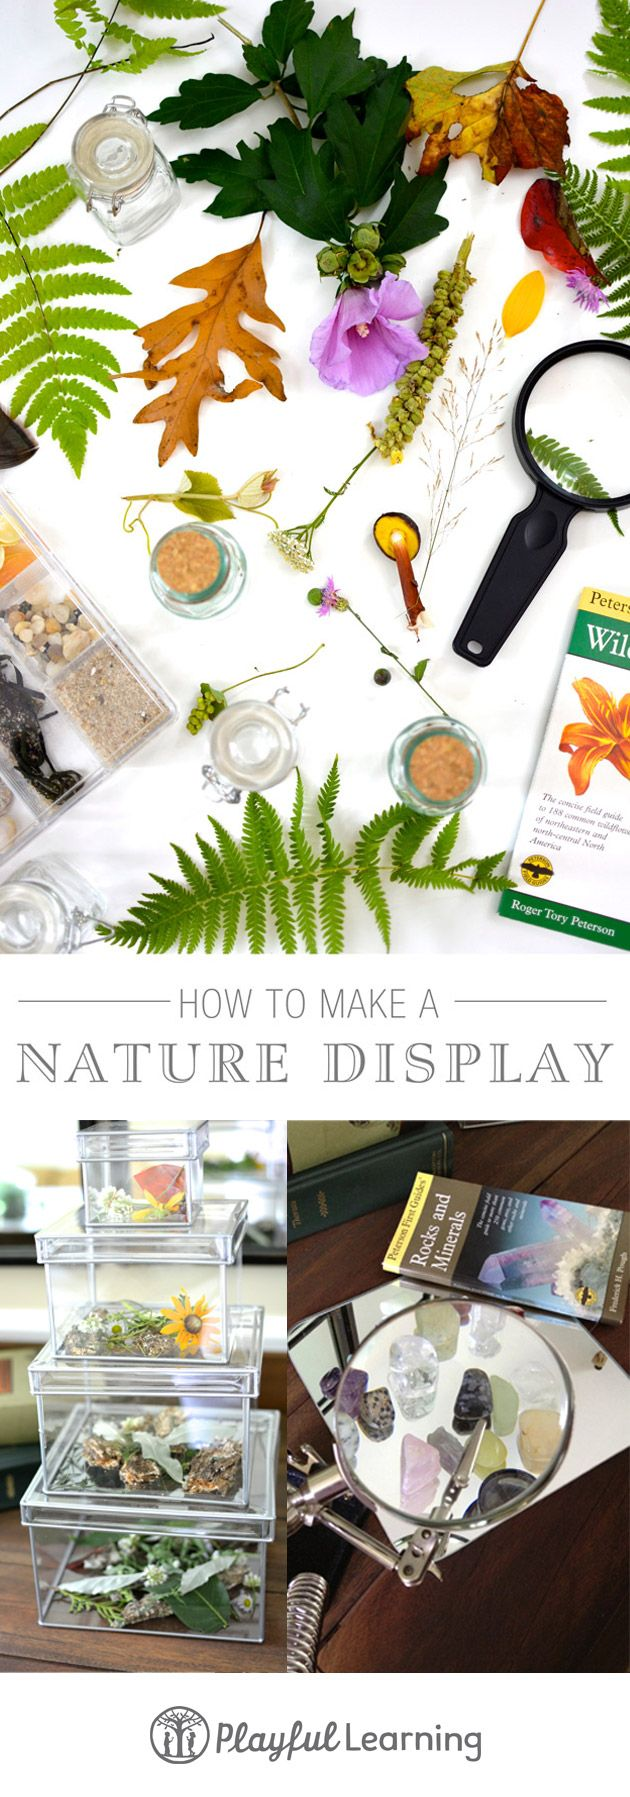 How to make a nature display - great project for spring